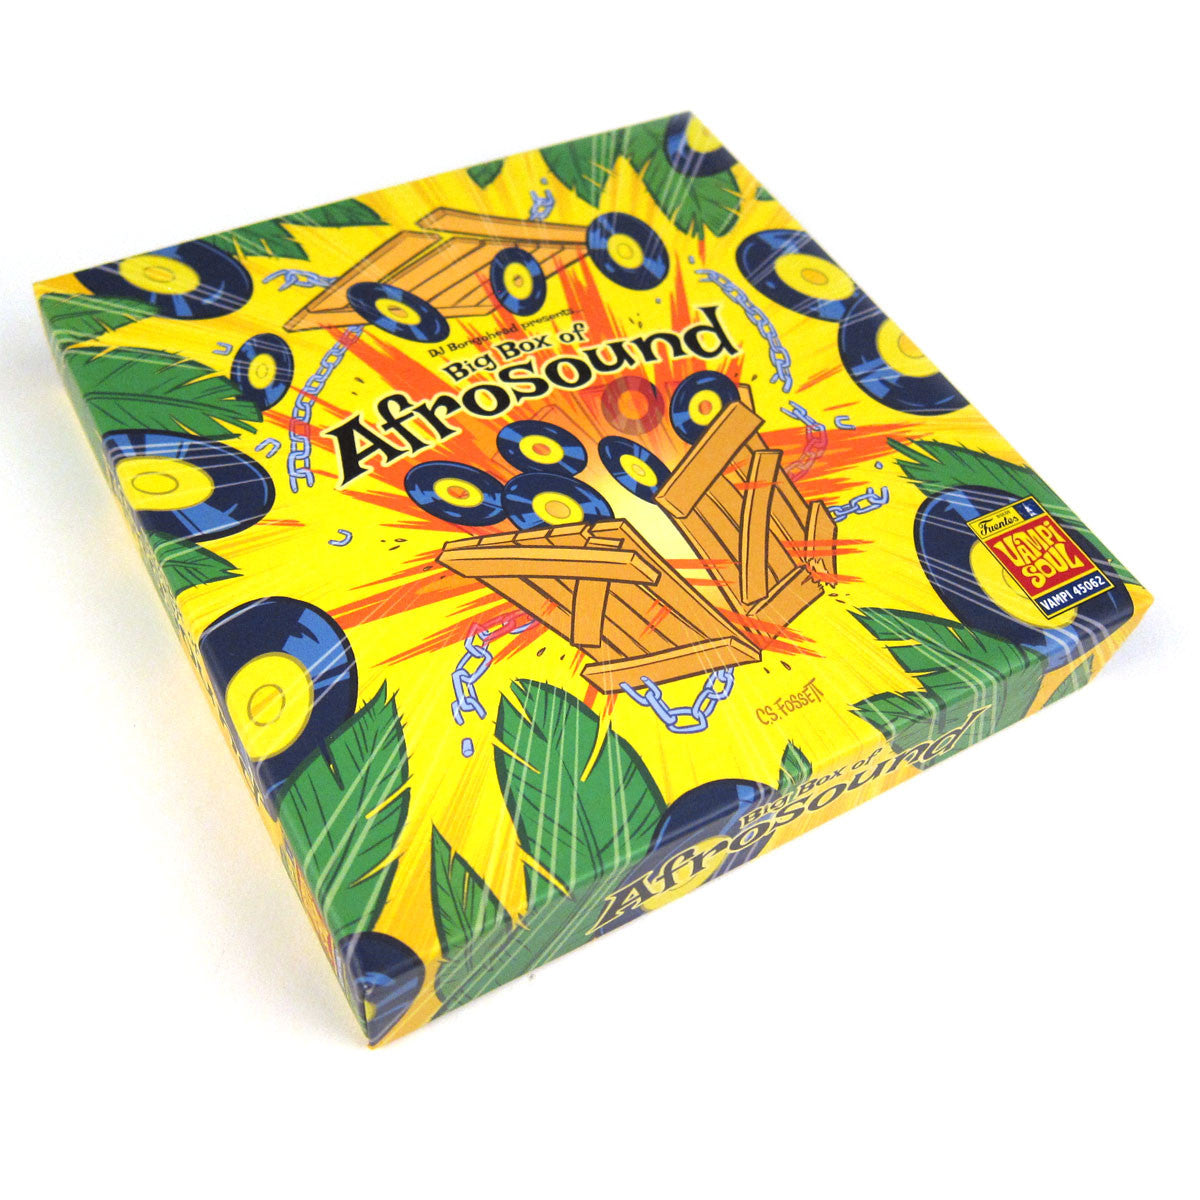 "Vampi Soul: DJ Bongo Head Presents Big Box Of Afrosound Vinyl 10x7"" Boxset"